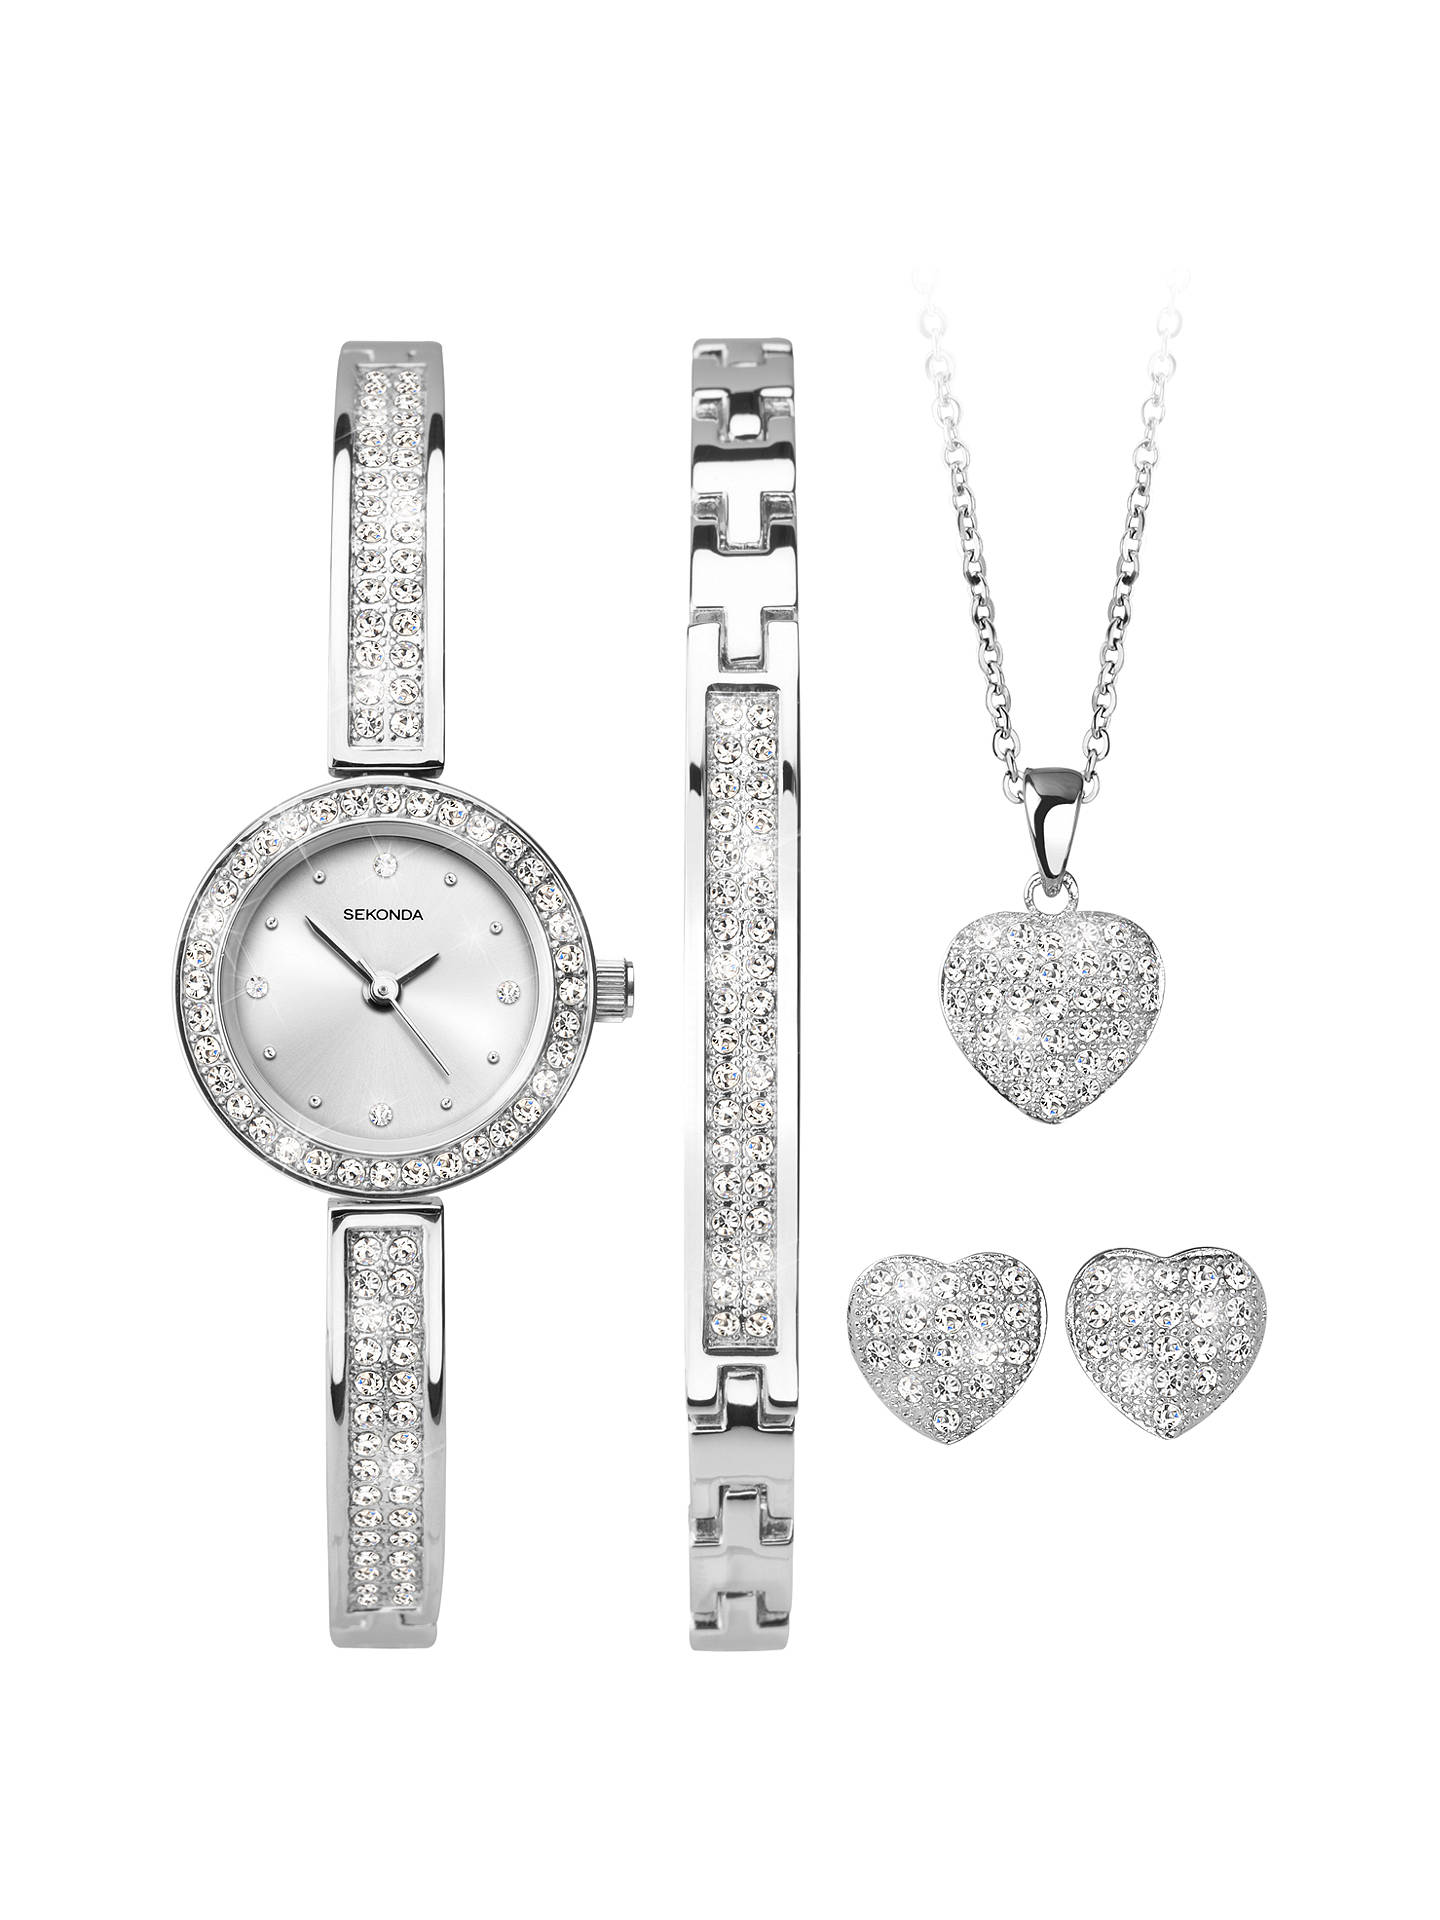 BuySekonda 2528G.76 Women's Crystal Bracelet Strap Watch, Bangle, Necklace and Stud Earrings Gift Set, Silver Online at johnlewis.com